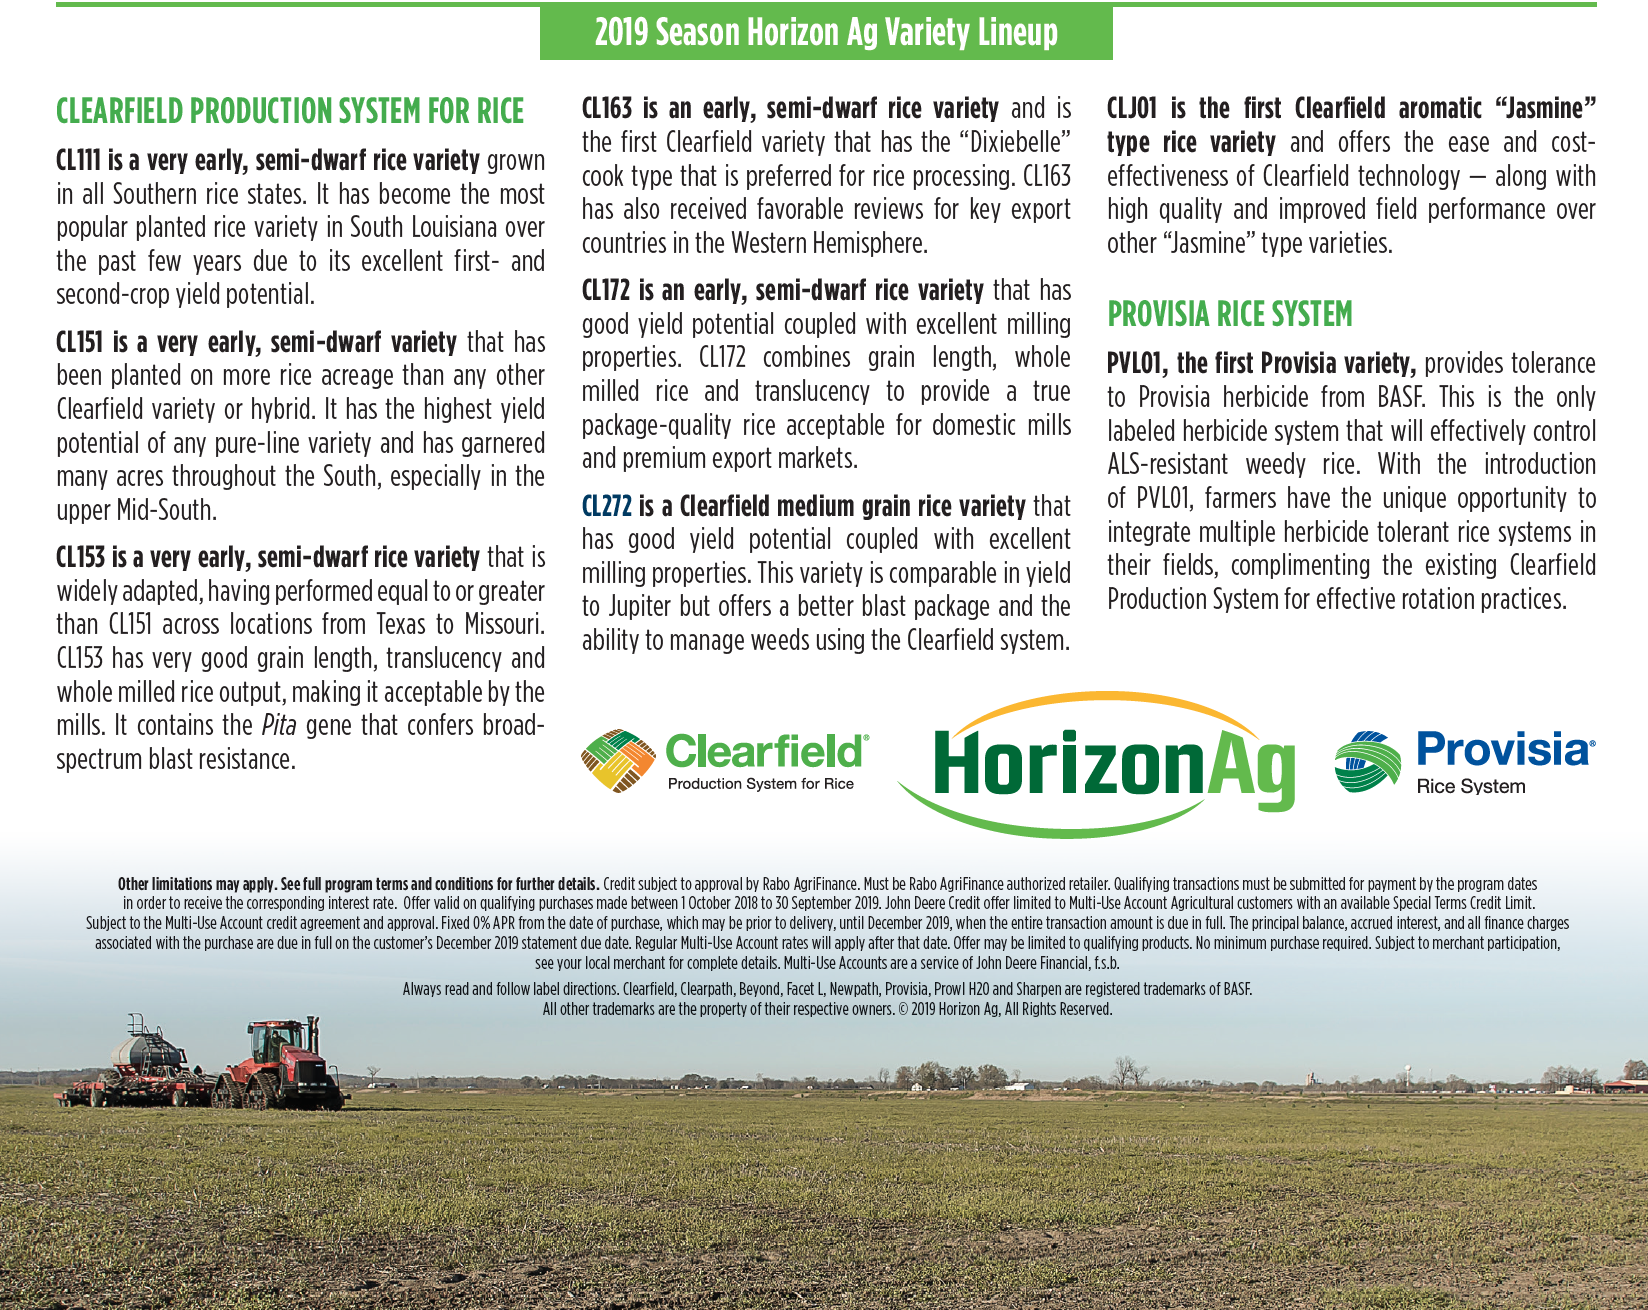 January 2019 Horizon Ag advertorial